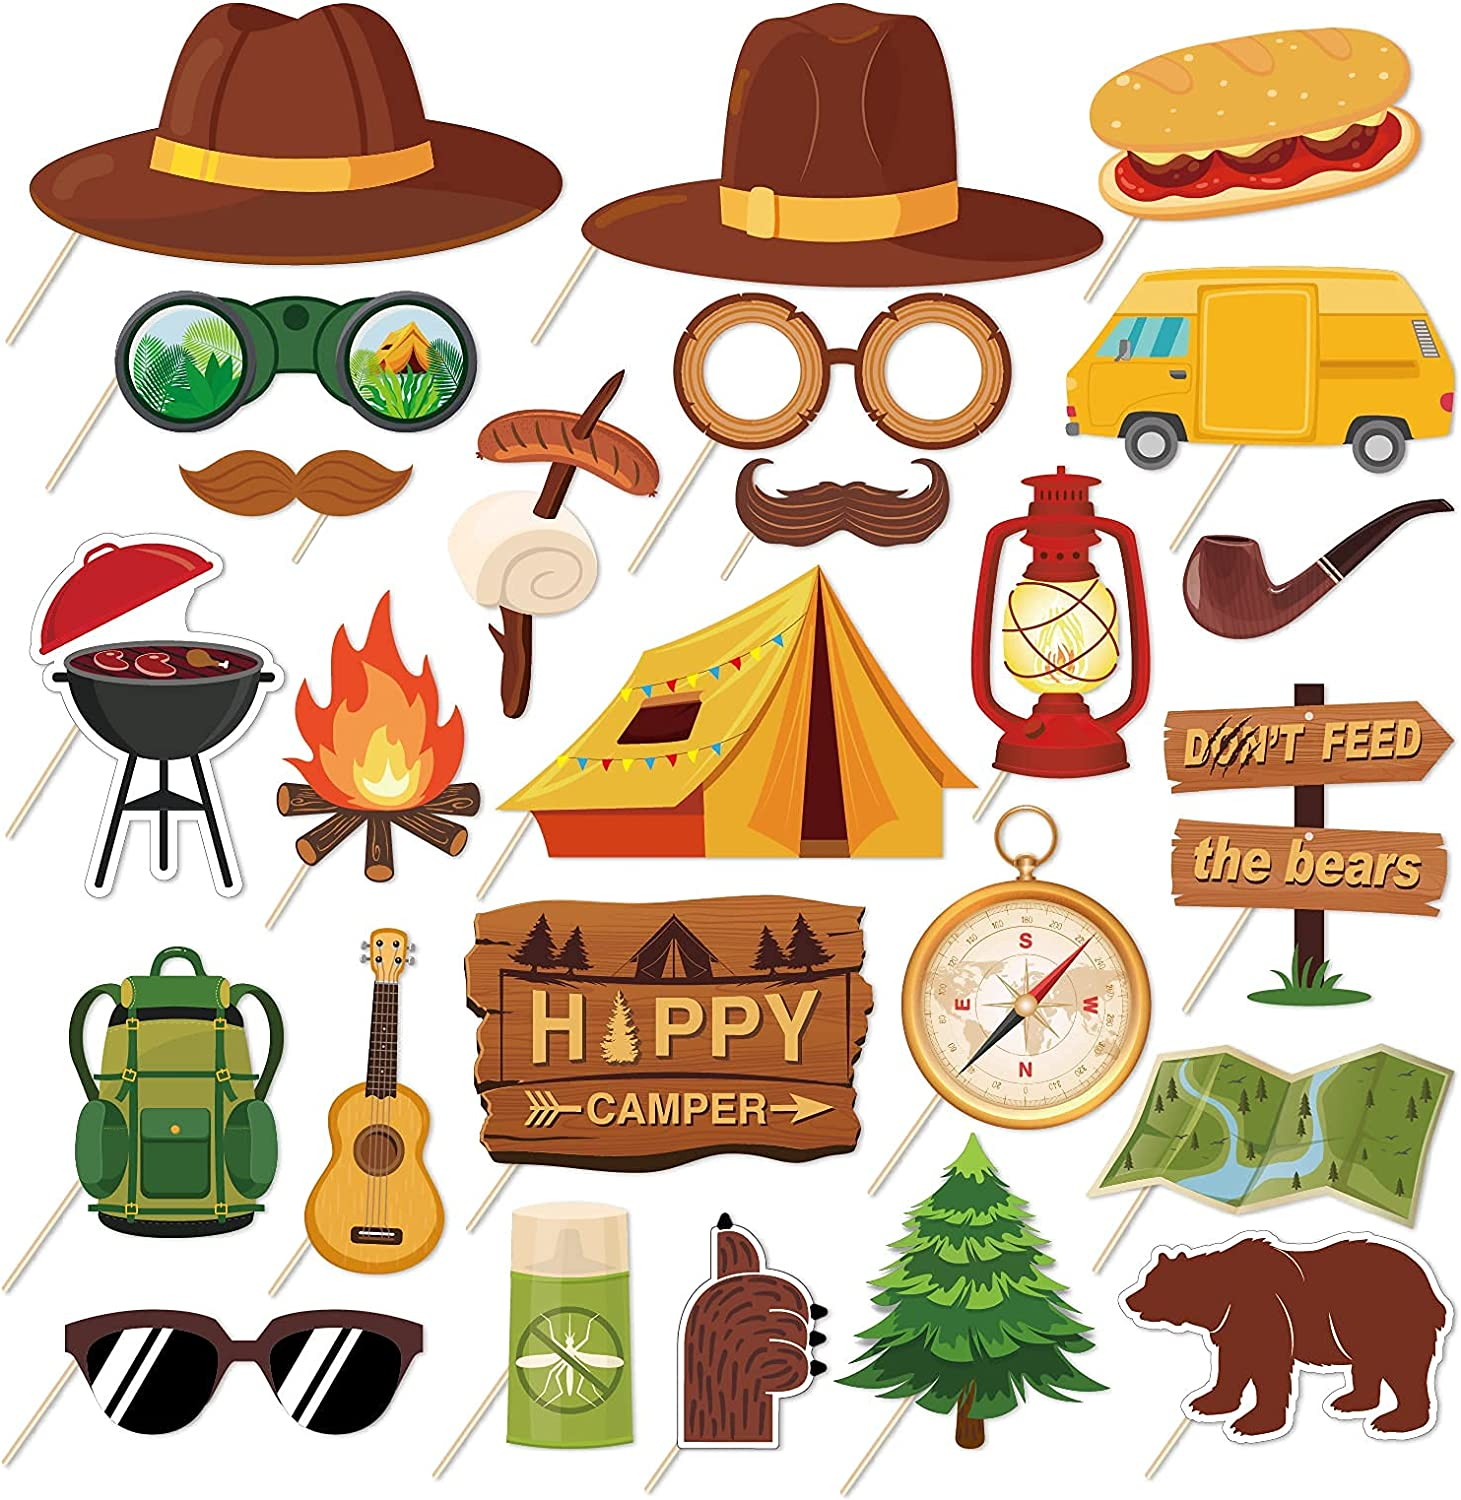 Happy Camper Party Photo Props Kit - 25Pcs Funny Camping Party Selfie Props with Sticks for Kids Girls Boy Camping Birthday Party Supplies,Baby Shower,Backyard Camp Out Campfire Forest Hiking Fun Adventure Party Decor